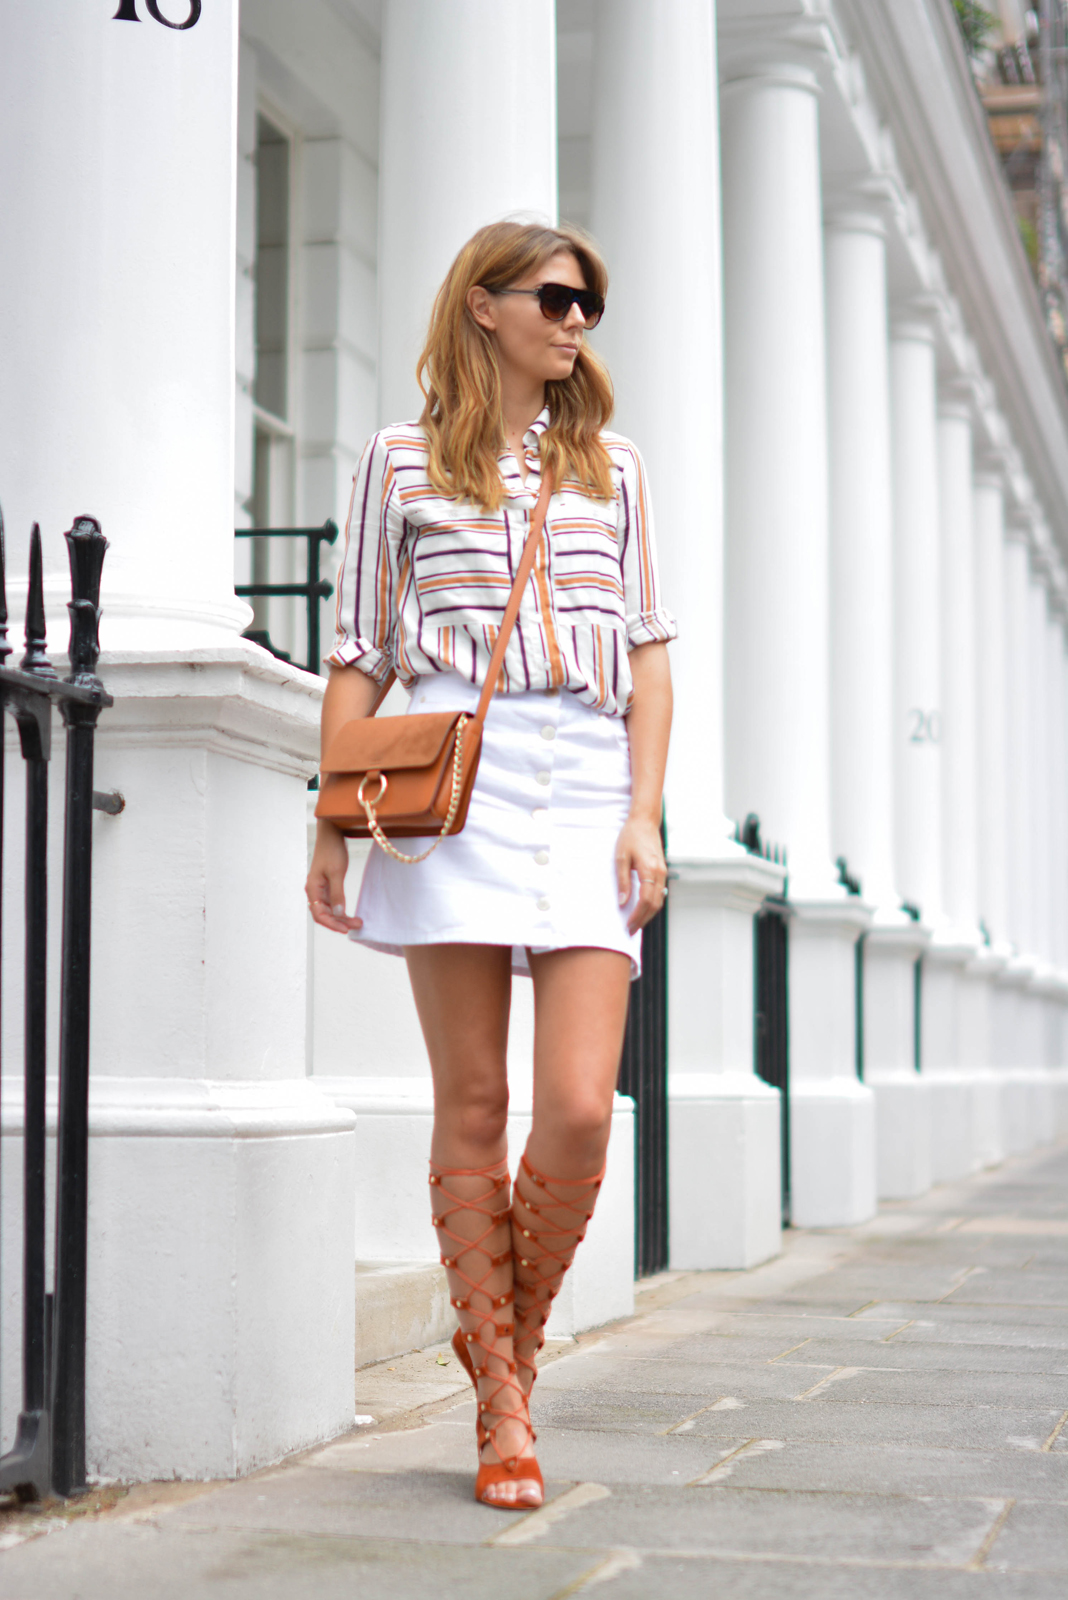 EJSTYLE wears Chloe style Tan lace up gladiator wedge sandals, White button up denim mini skirt, retro stripe shirt, Tan suede leather chloe style Faye bag, summer outfit ideas